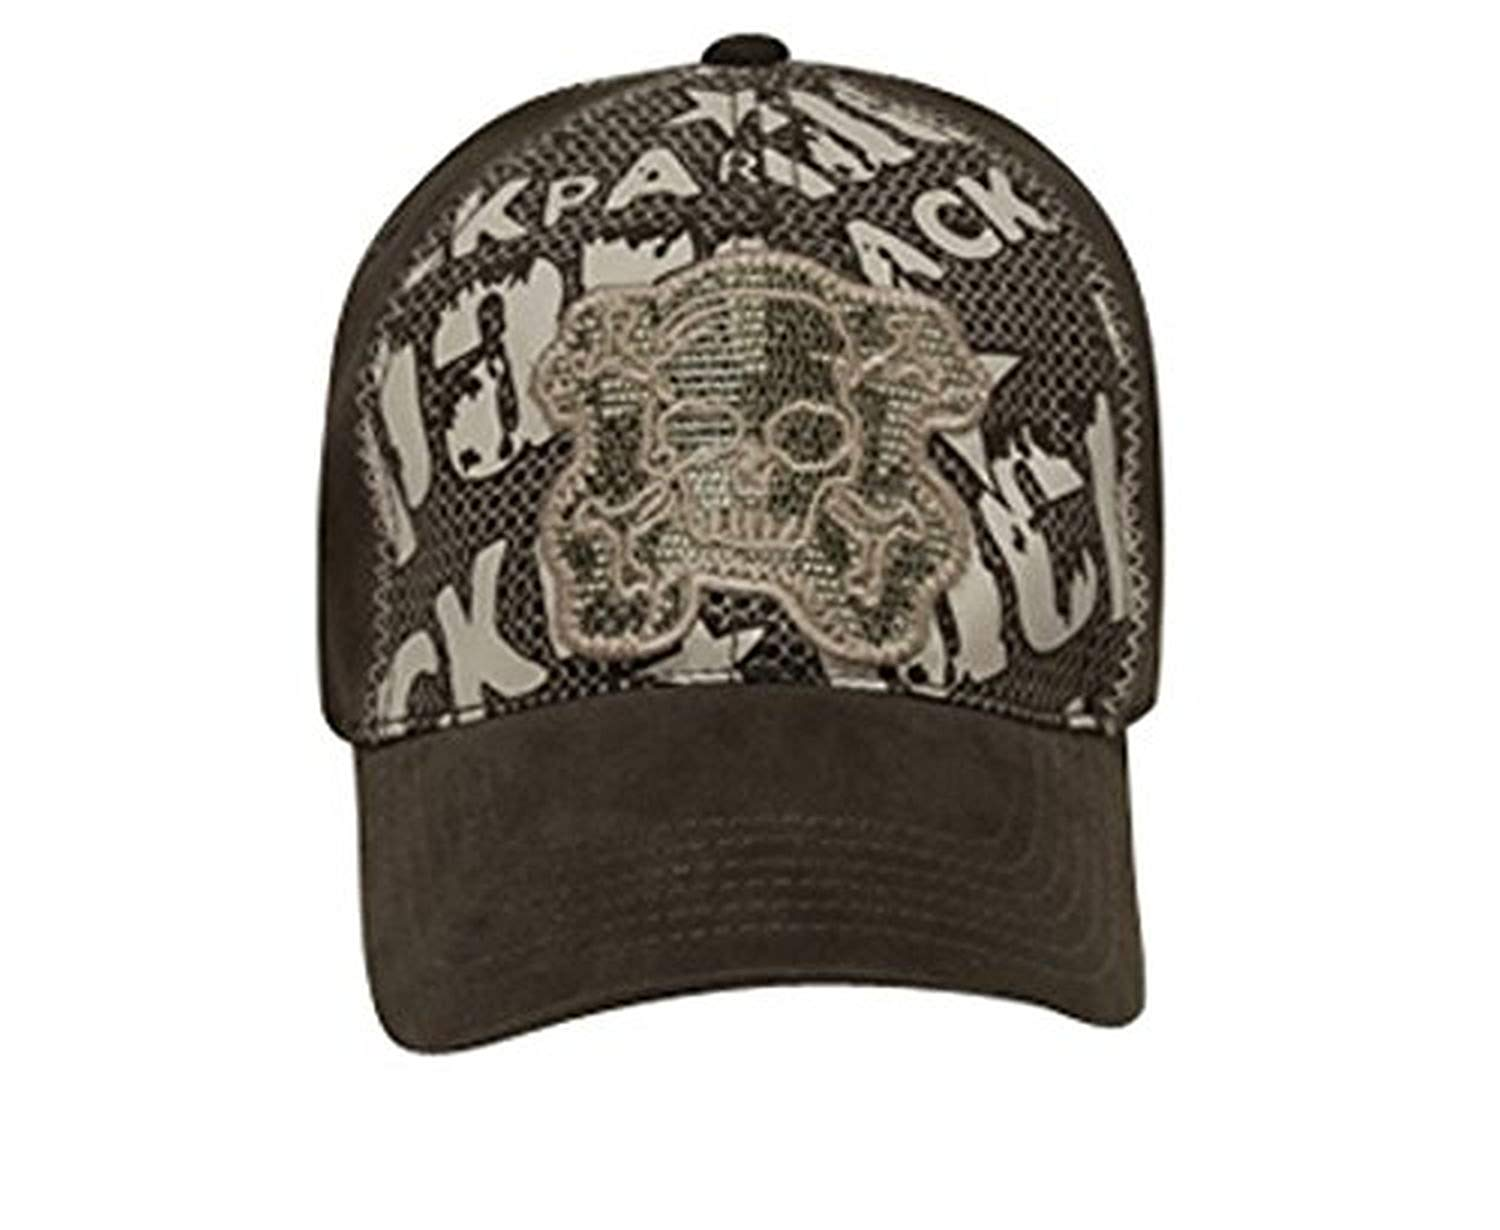 Hats & Caps Shop Lackpard Flex Skull Mesh Embroidered Design Caps - By TheTargetBuys